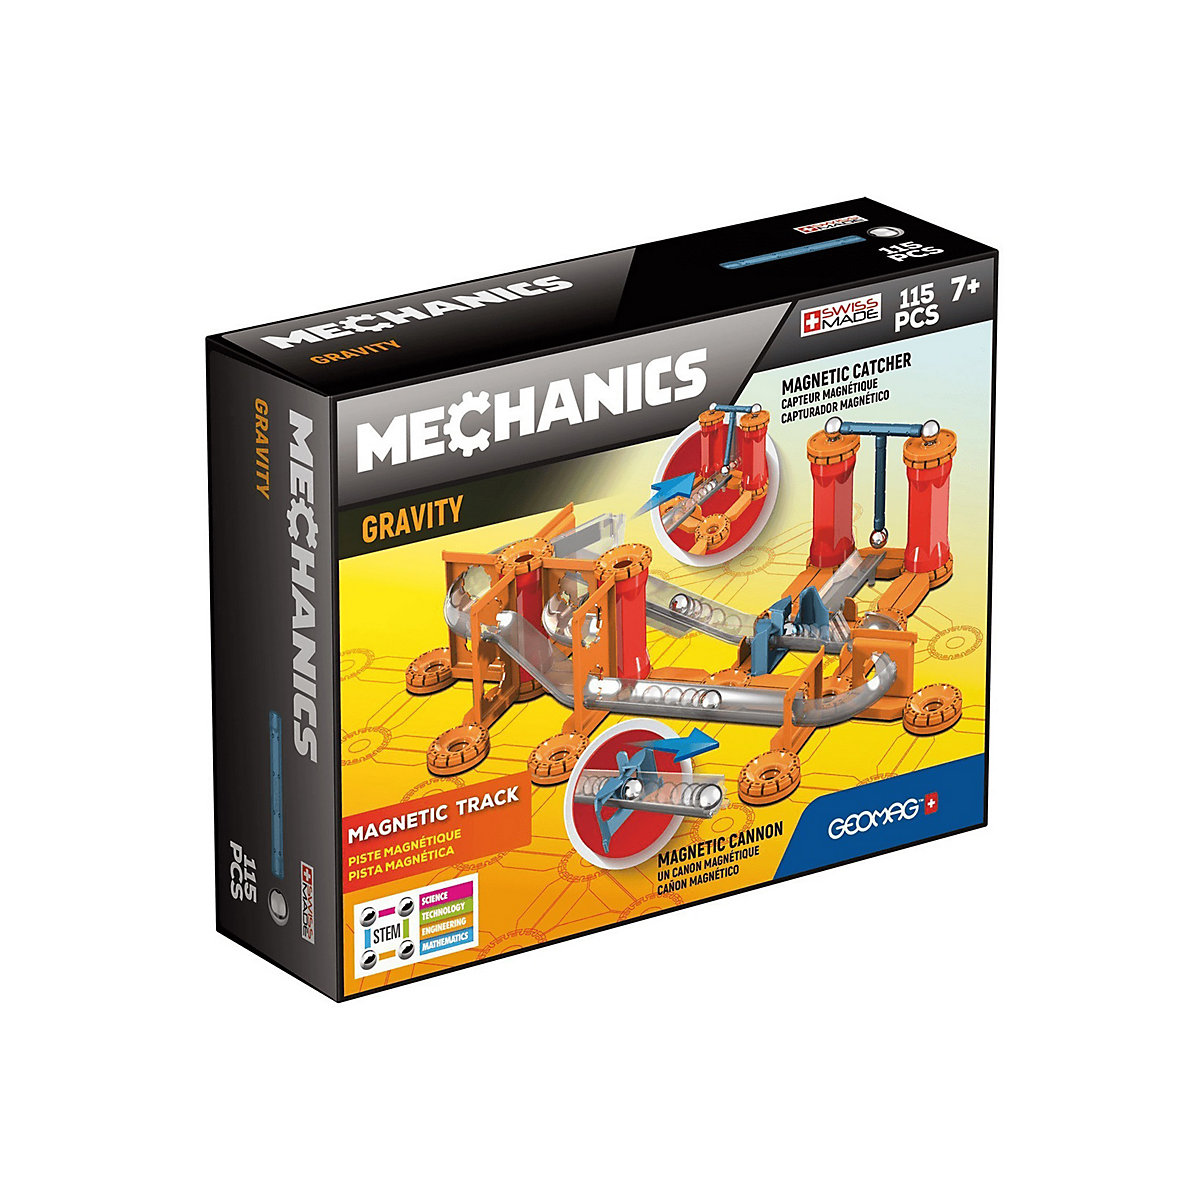 Geomag Gravity Magnetic Track - 115Pcs